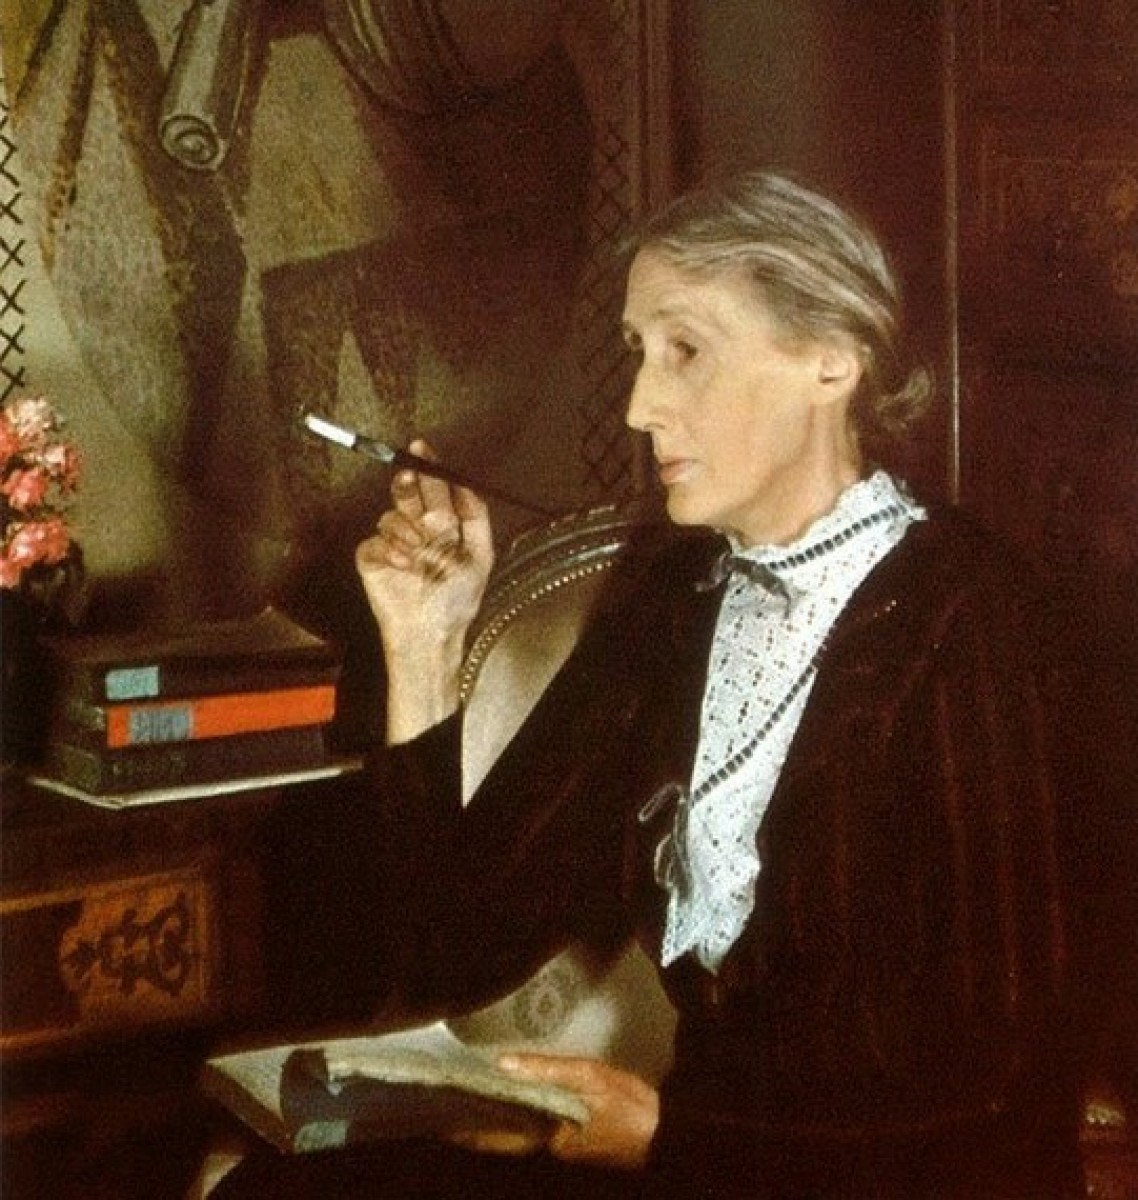 Eterna Cadencia - El día que Virginia Woolf se negó a editar a James Joyce